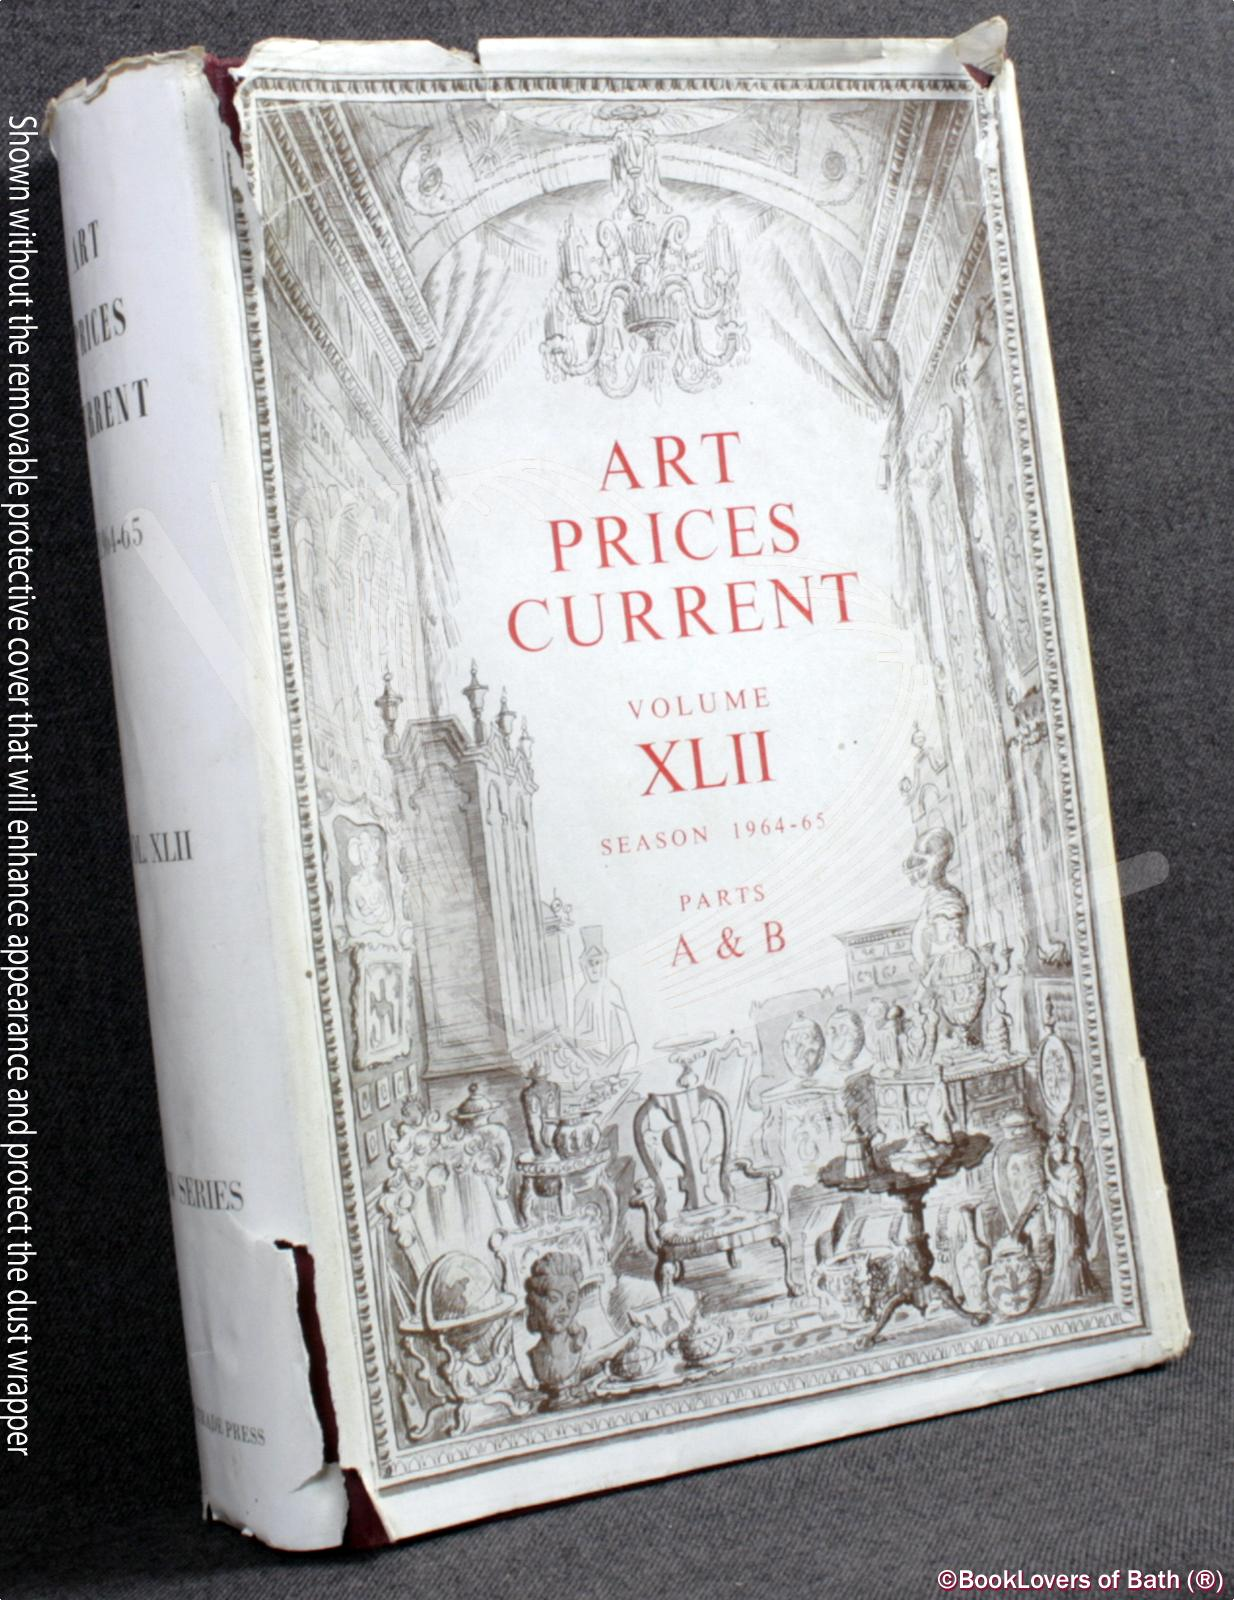 Art Prices Current: A Record of Sale Prices At the Principal London and Other Auction Rooms Volume XLII August 1964 to July 1965 Parts a & B Paintings, Drawings and Miniatures Engravings and Prints with Indexes to the Artists, Engravers and Collectors - Anon.